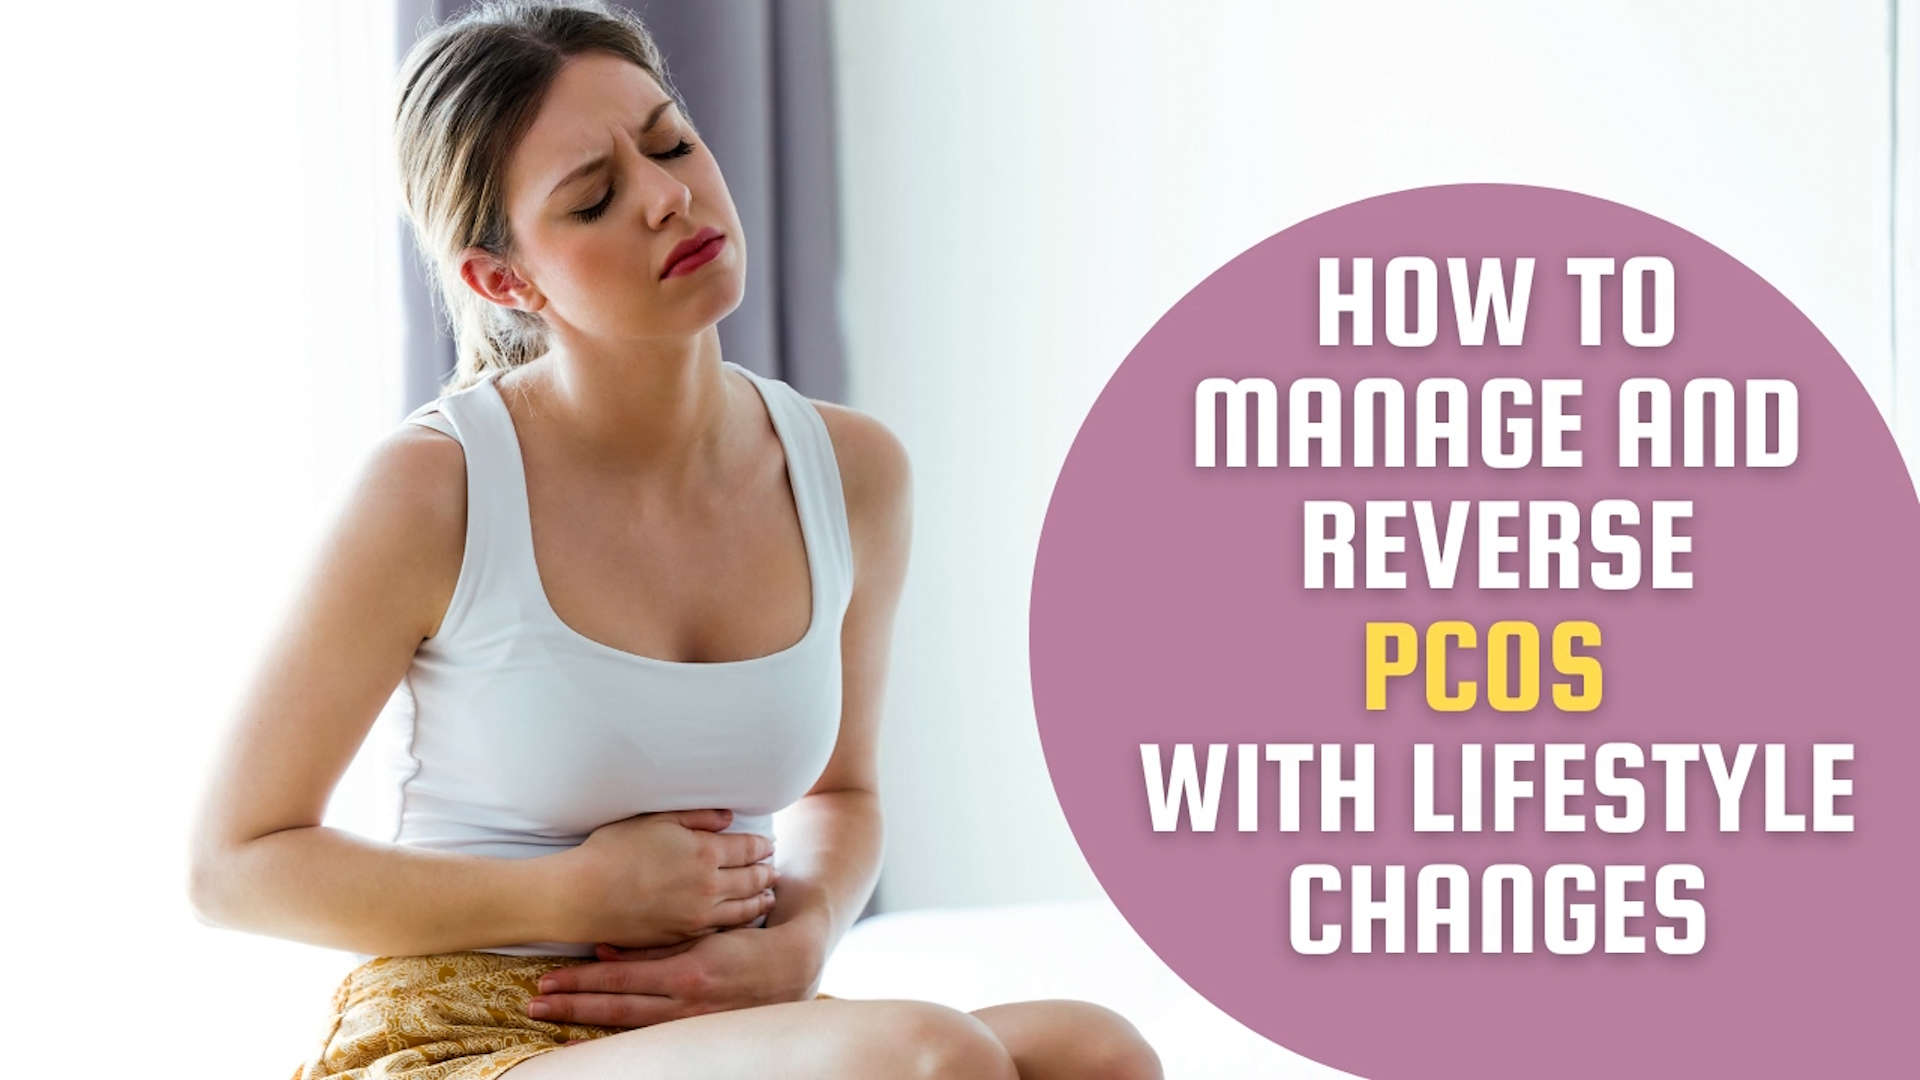 how-to-manage-and-reverse-pcos-with-lifestyle-changes